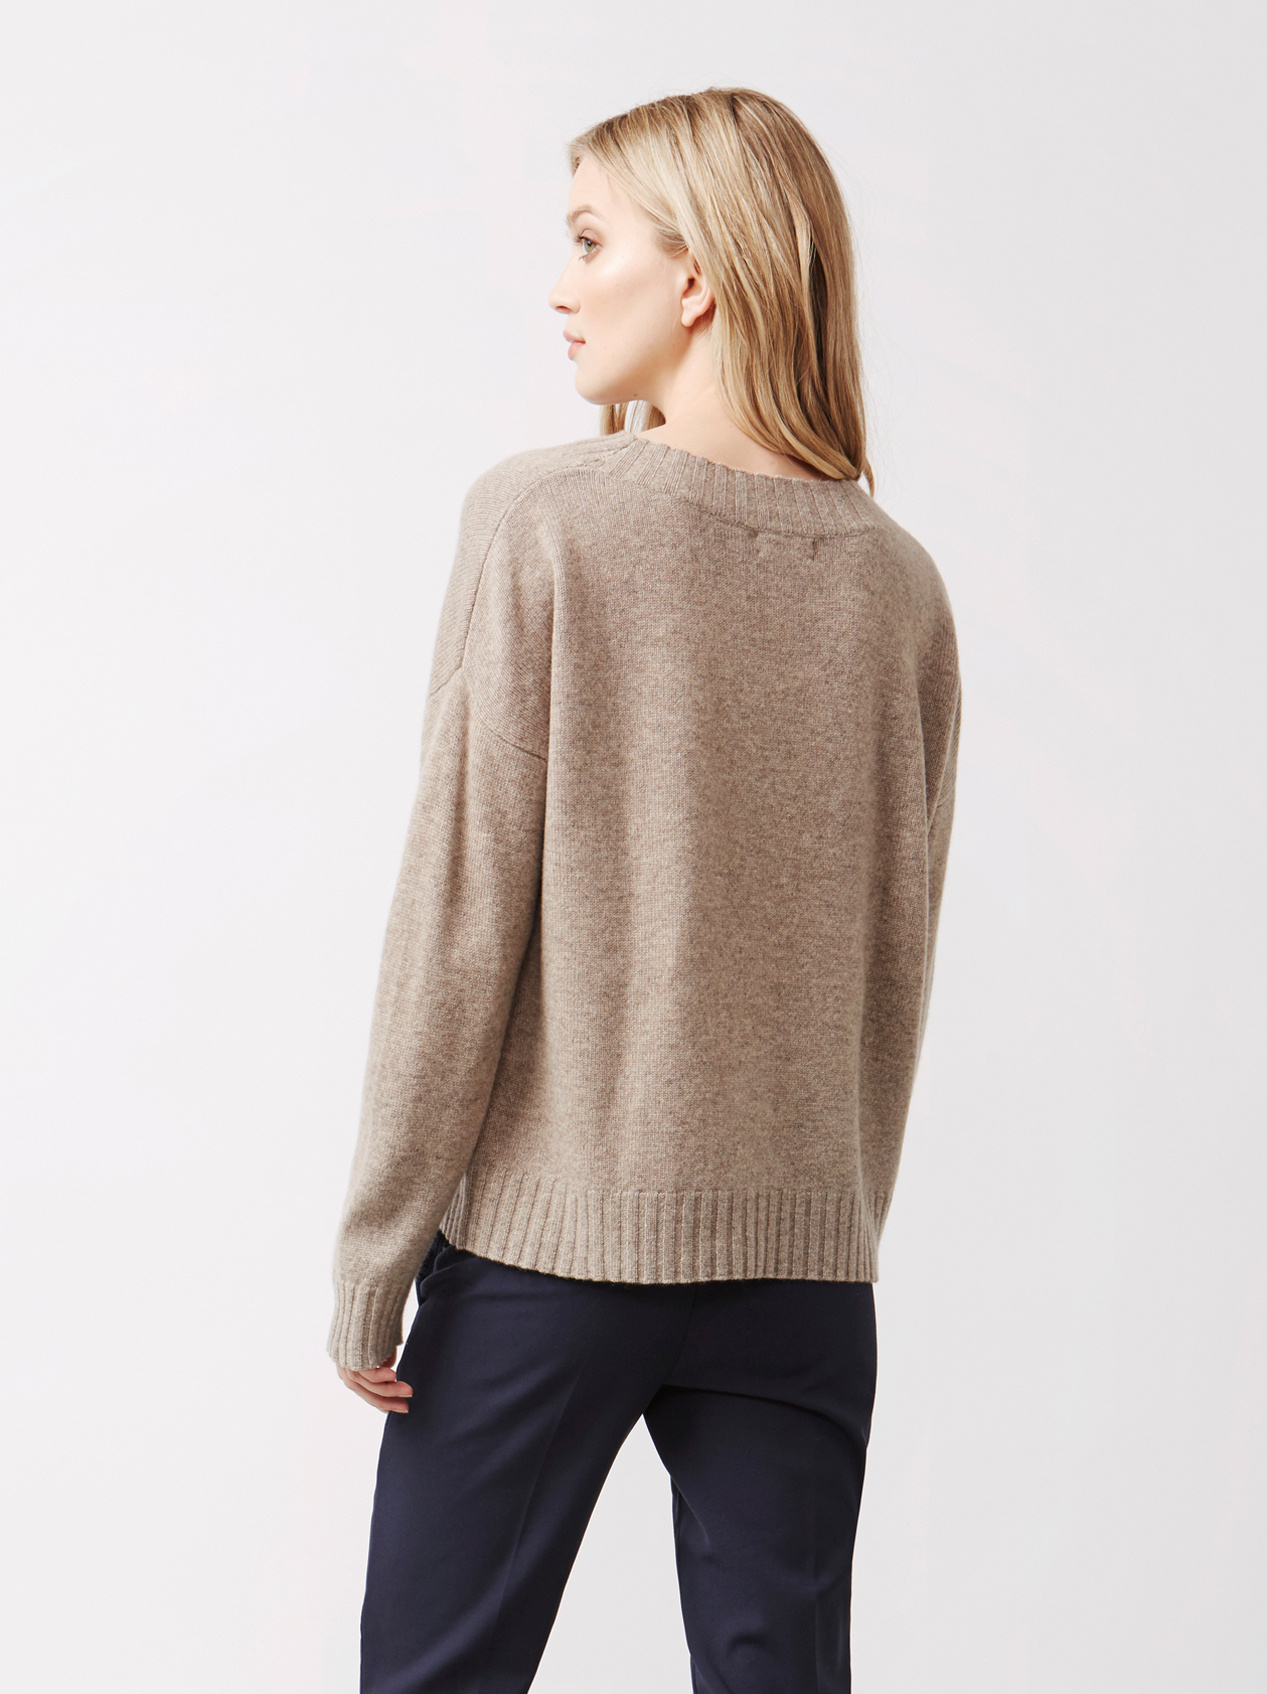 Soft Goat Women's Relaxed Sweater Taupe